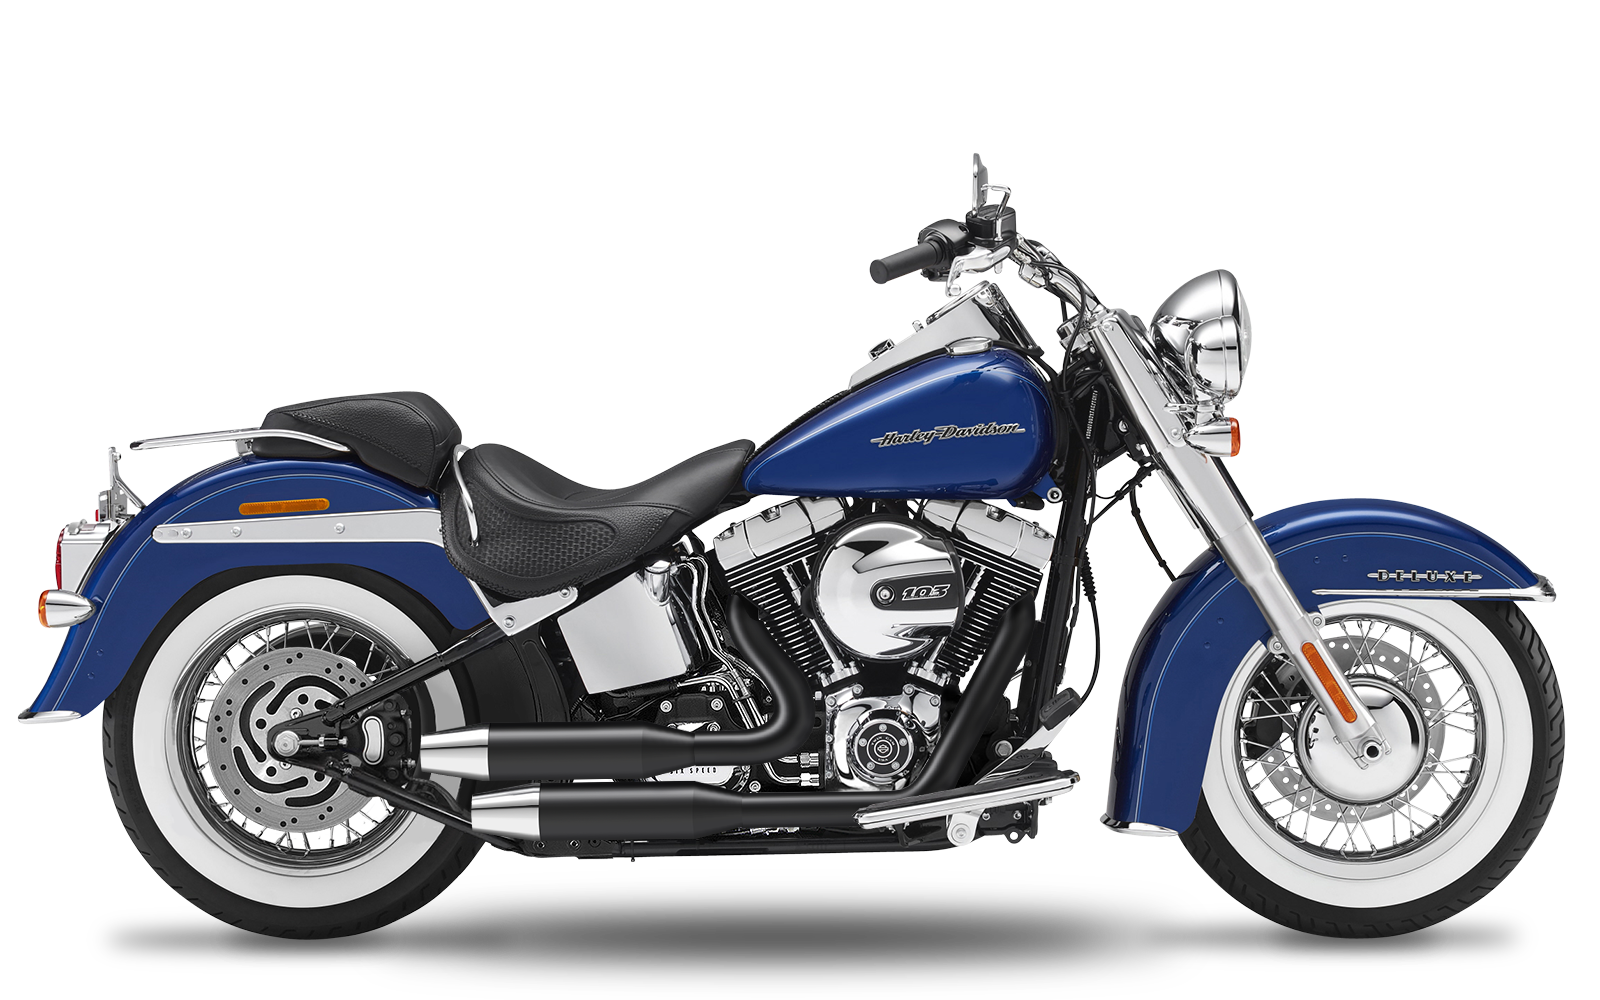 Softail - Deluxe - TC103 - 2012-2016 - Complete systems adjustable